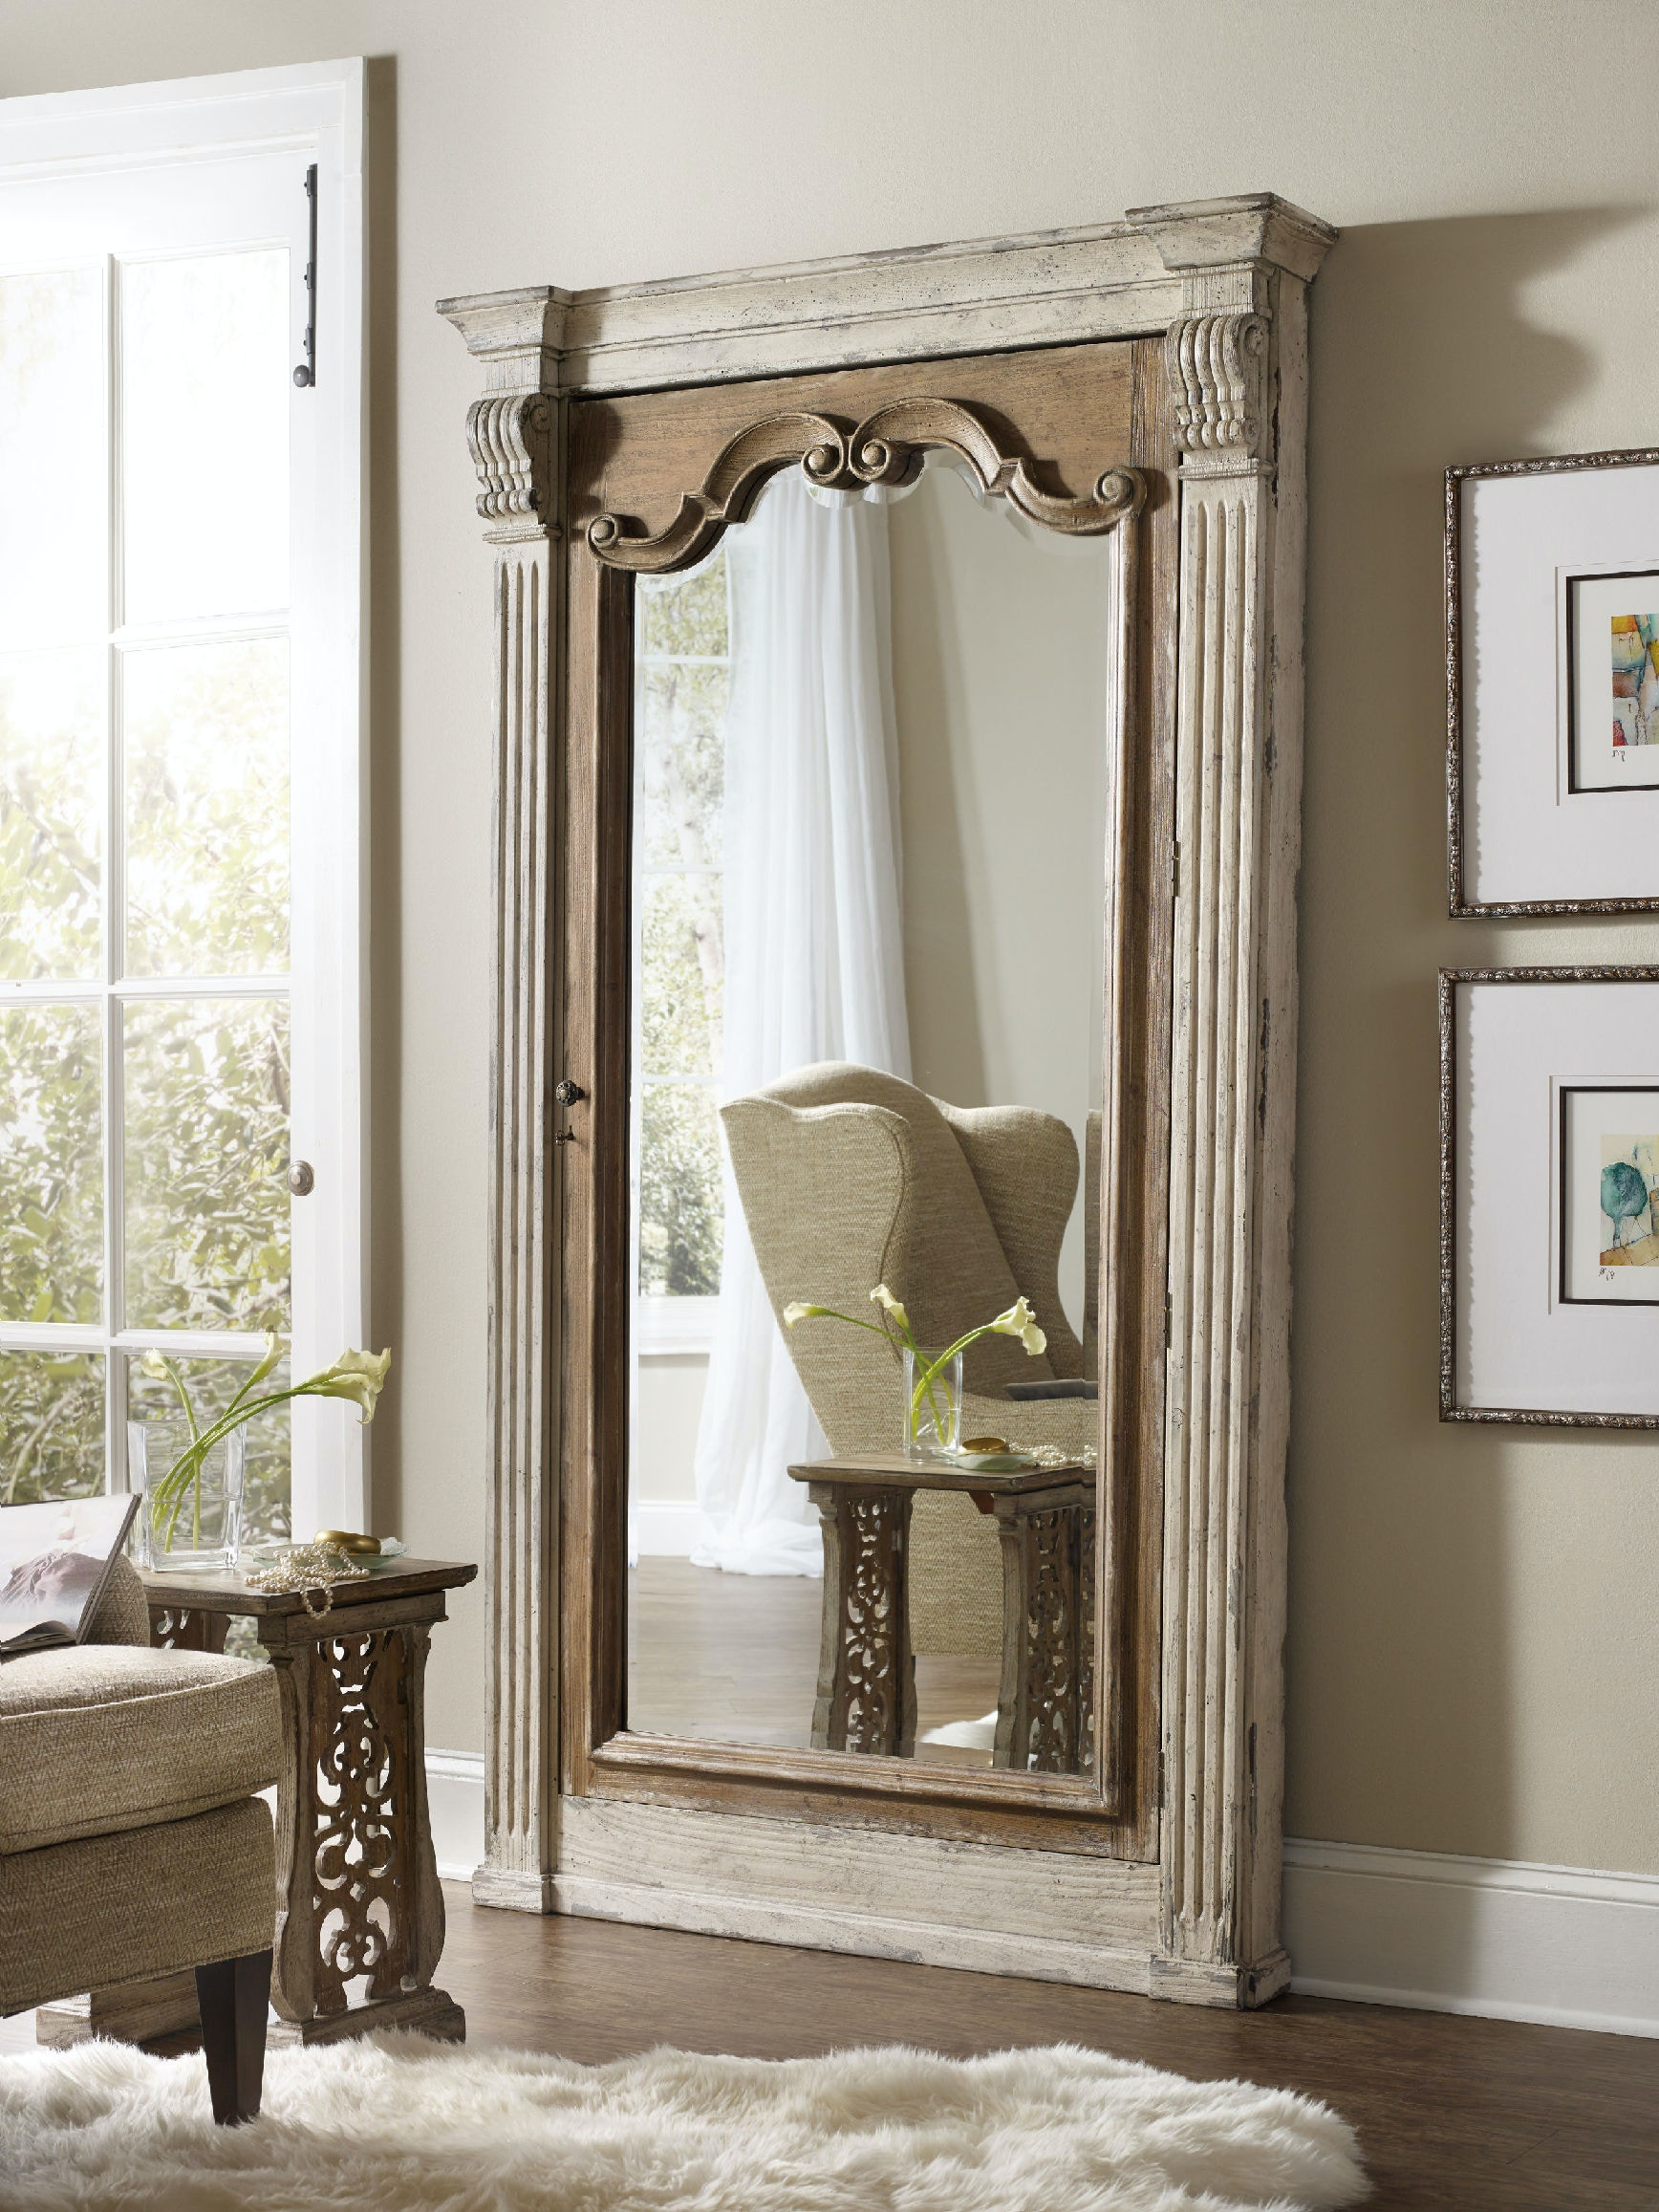 Hooker Furniture Accents Chatelet Floor Mirror W Jewelry Armoire Storage 5351 50003